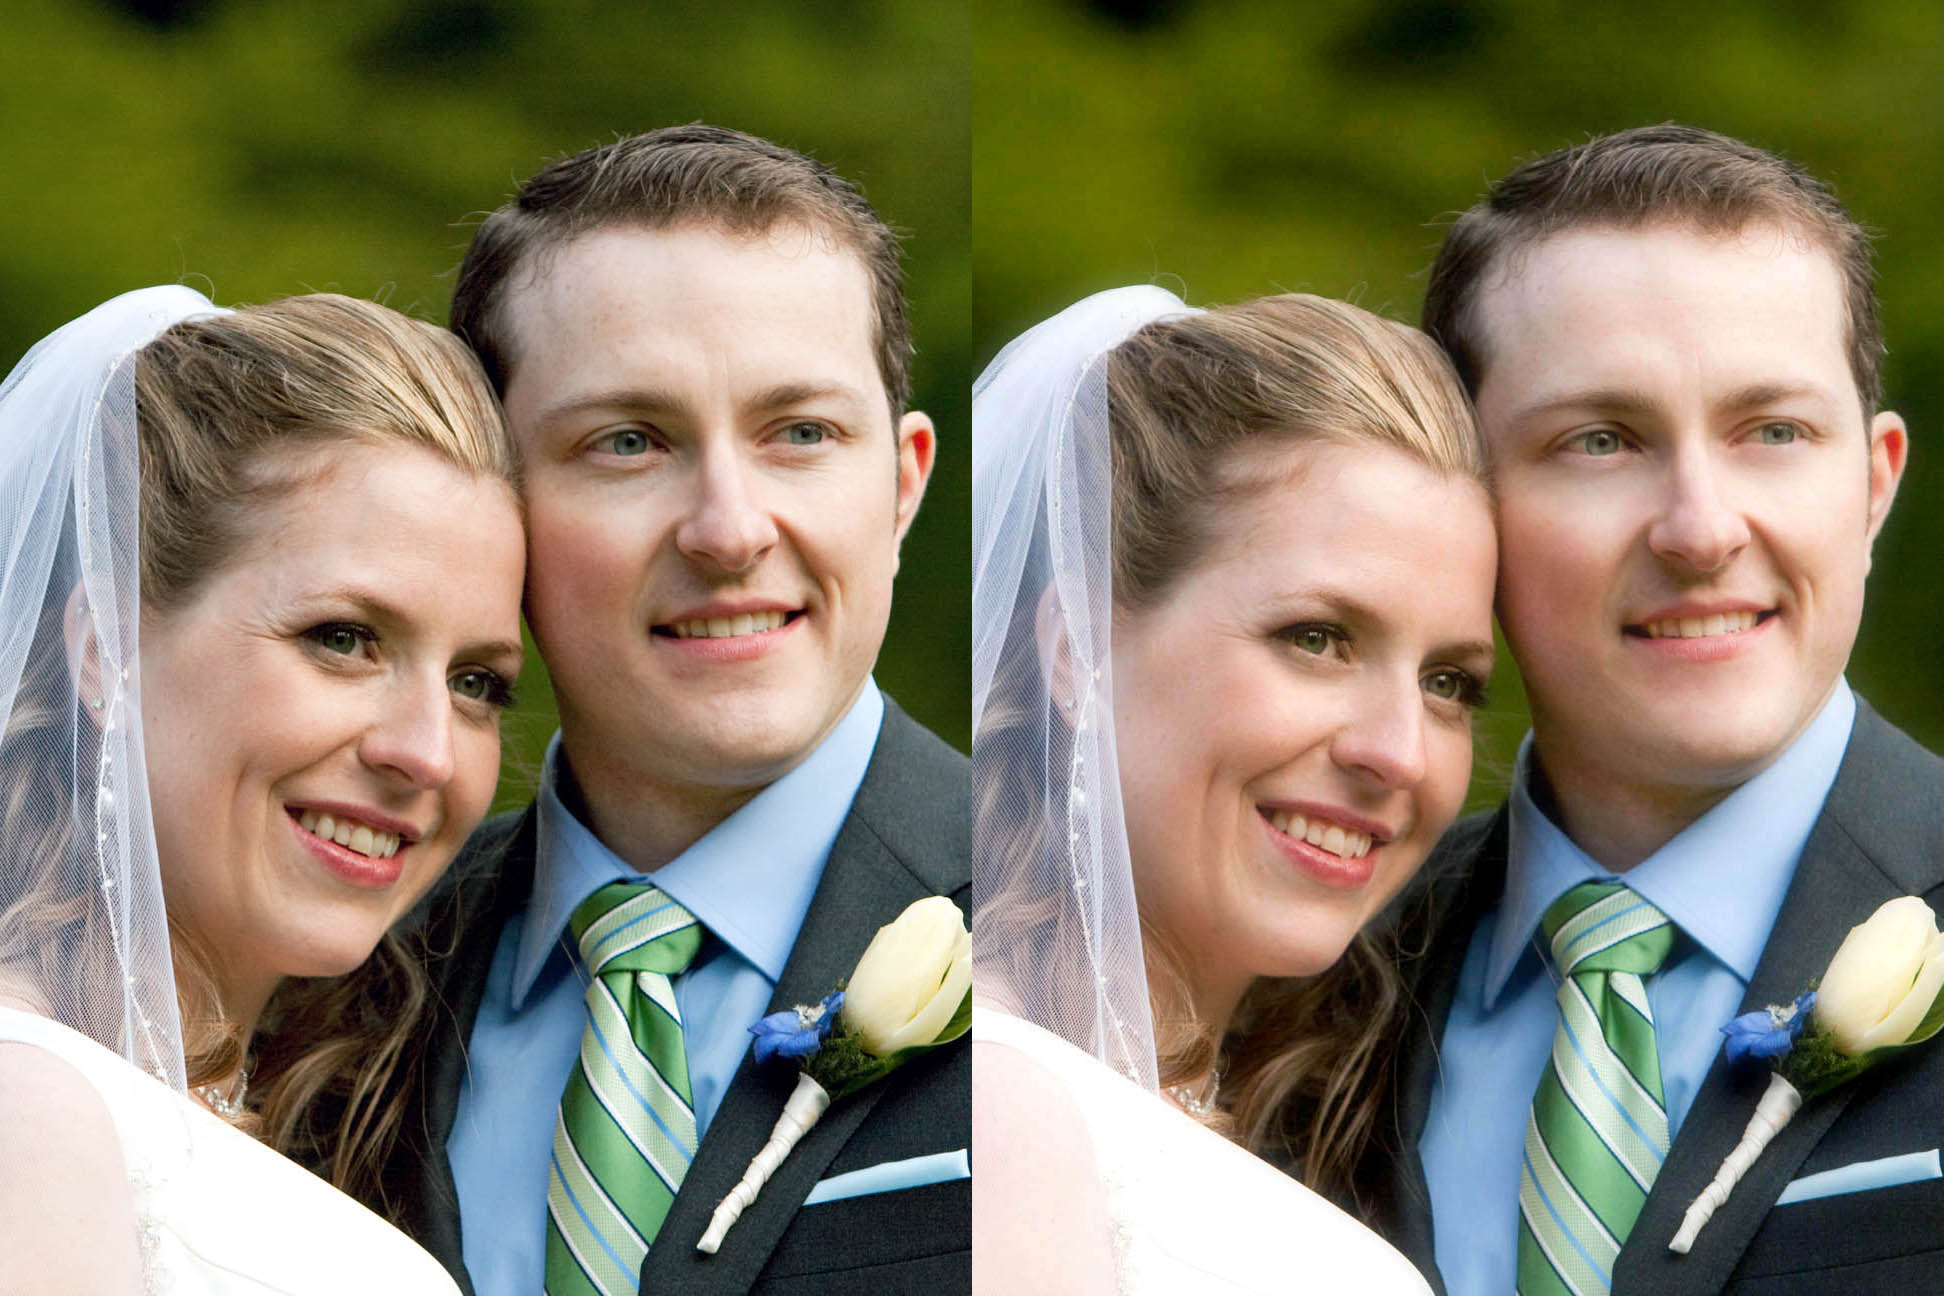 bride and groom retouched photo before and after